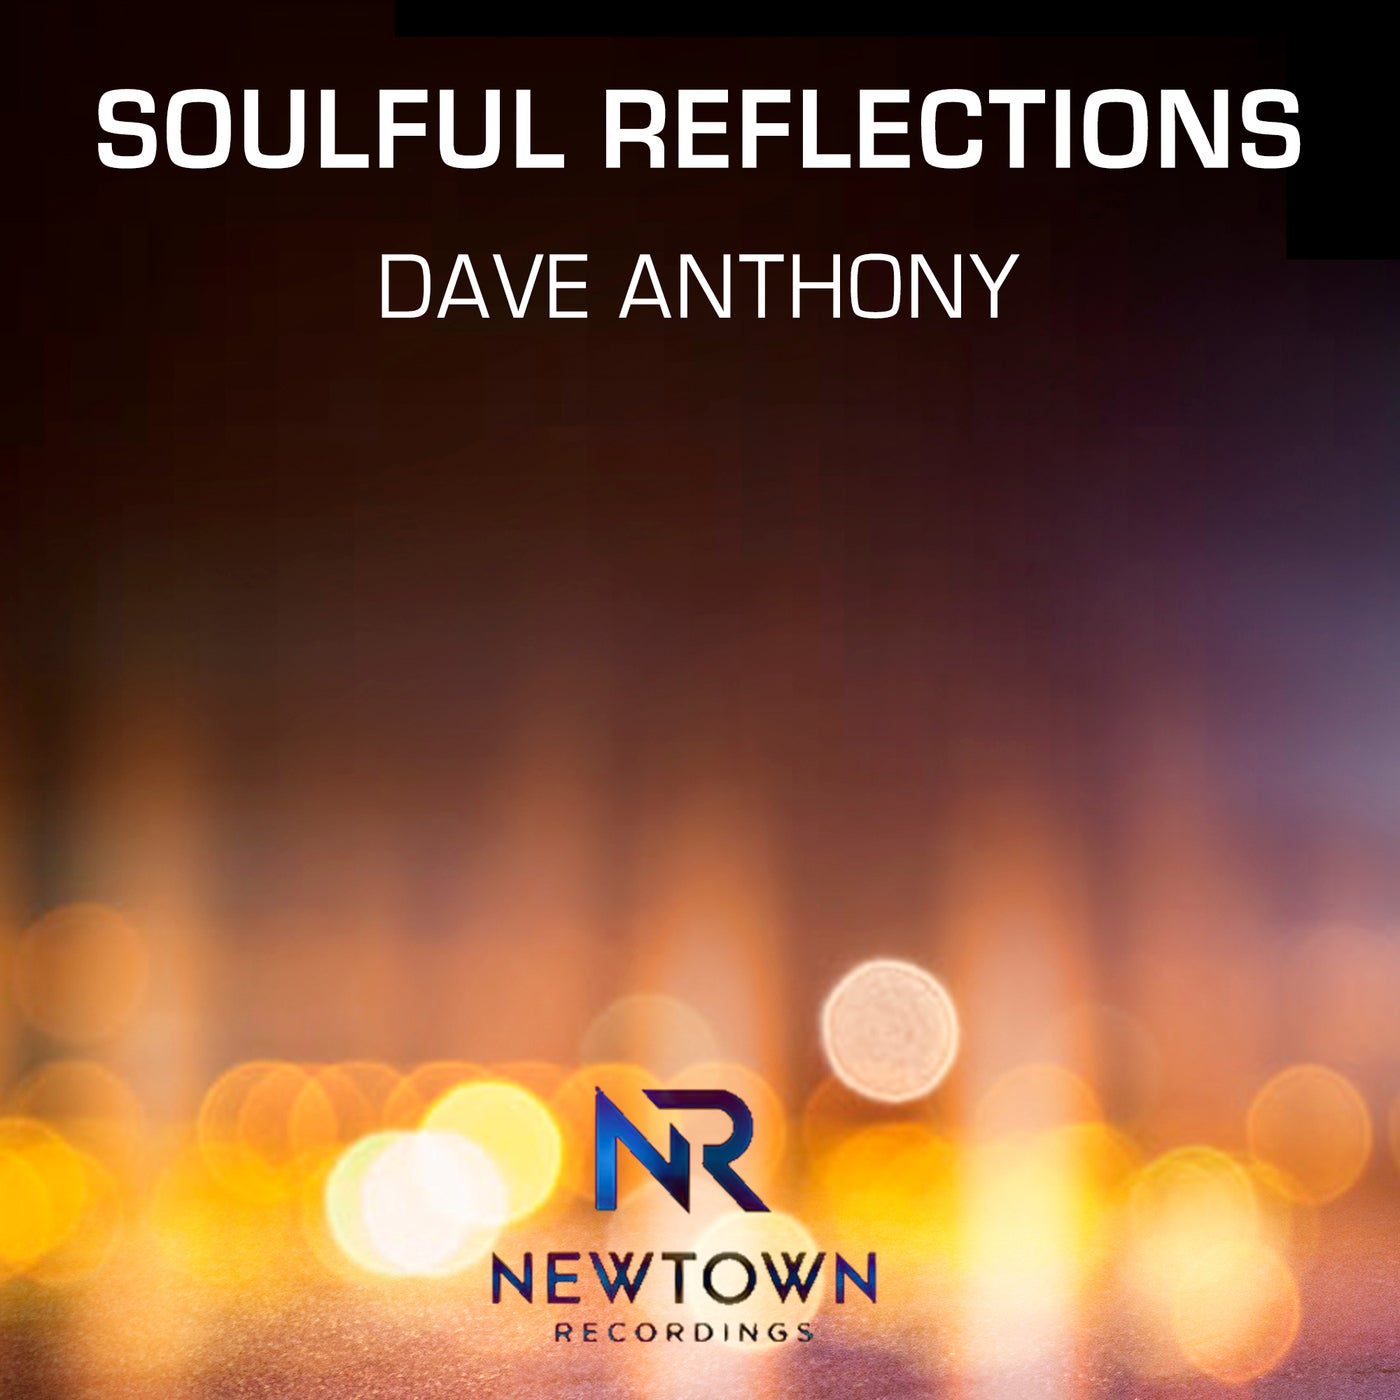 Various Performers - Soulful Reflections (2021)